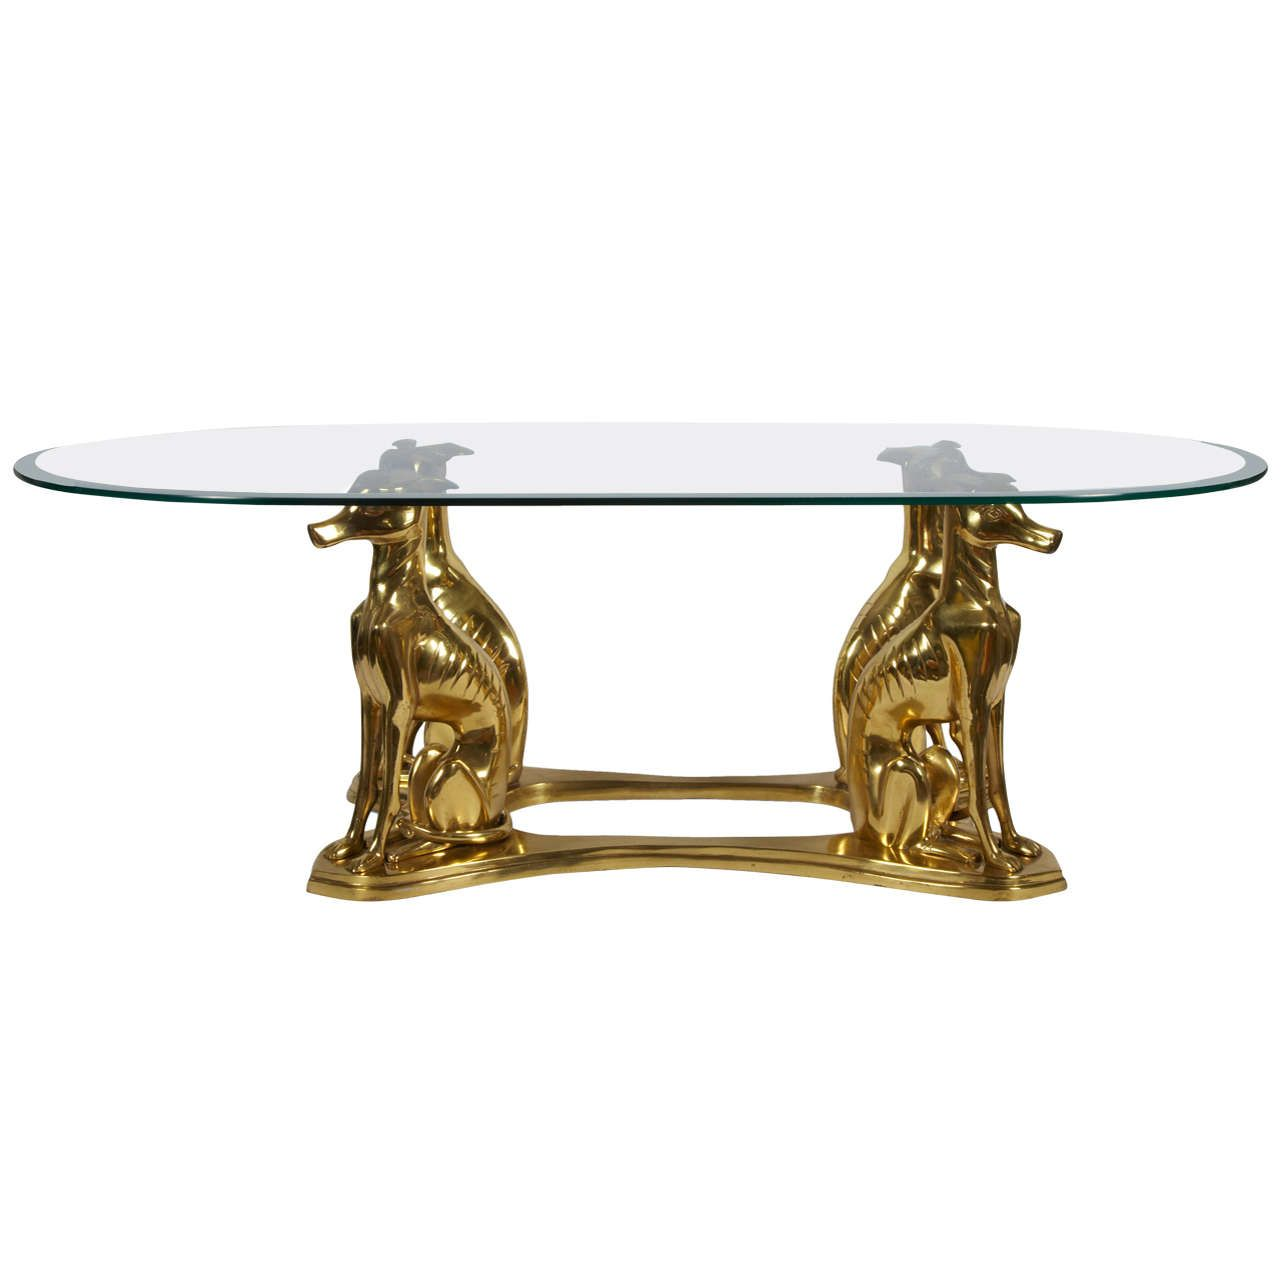 1970 S Bronze Dogs Cocktail Table In 2021 Glass Top Coffee Table Unusual Coffee Tables Table [ 1280 x 1281 Pixel ]